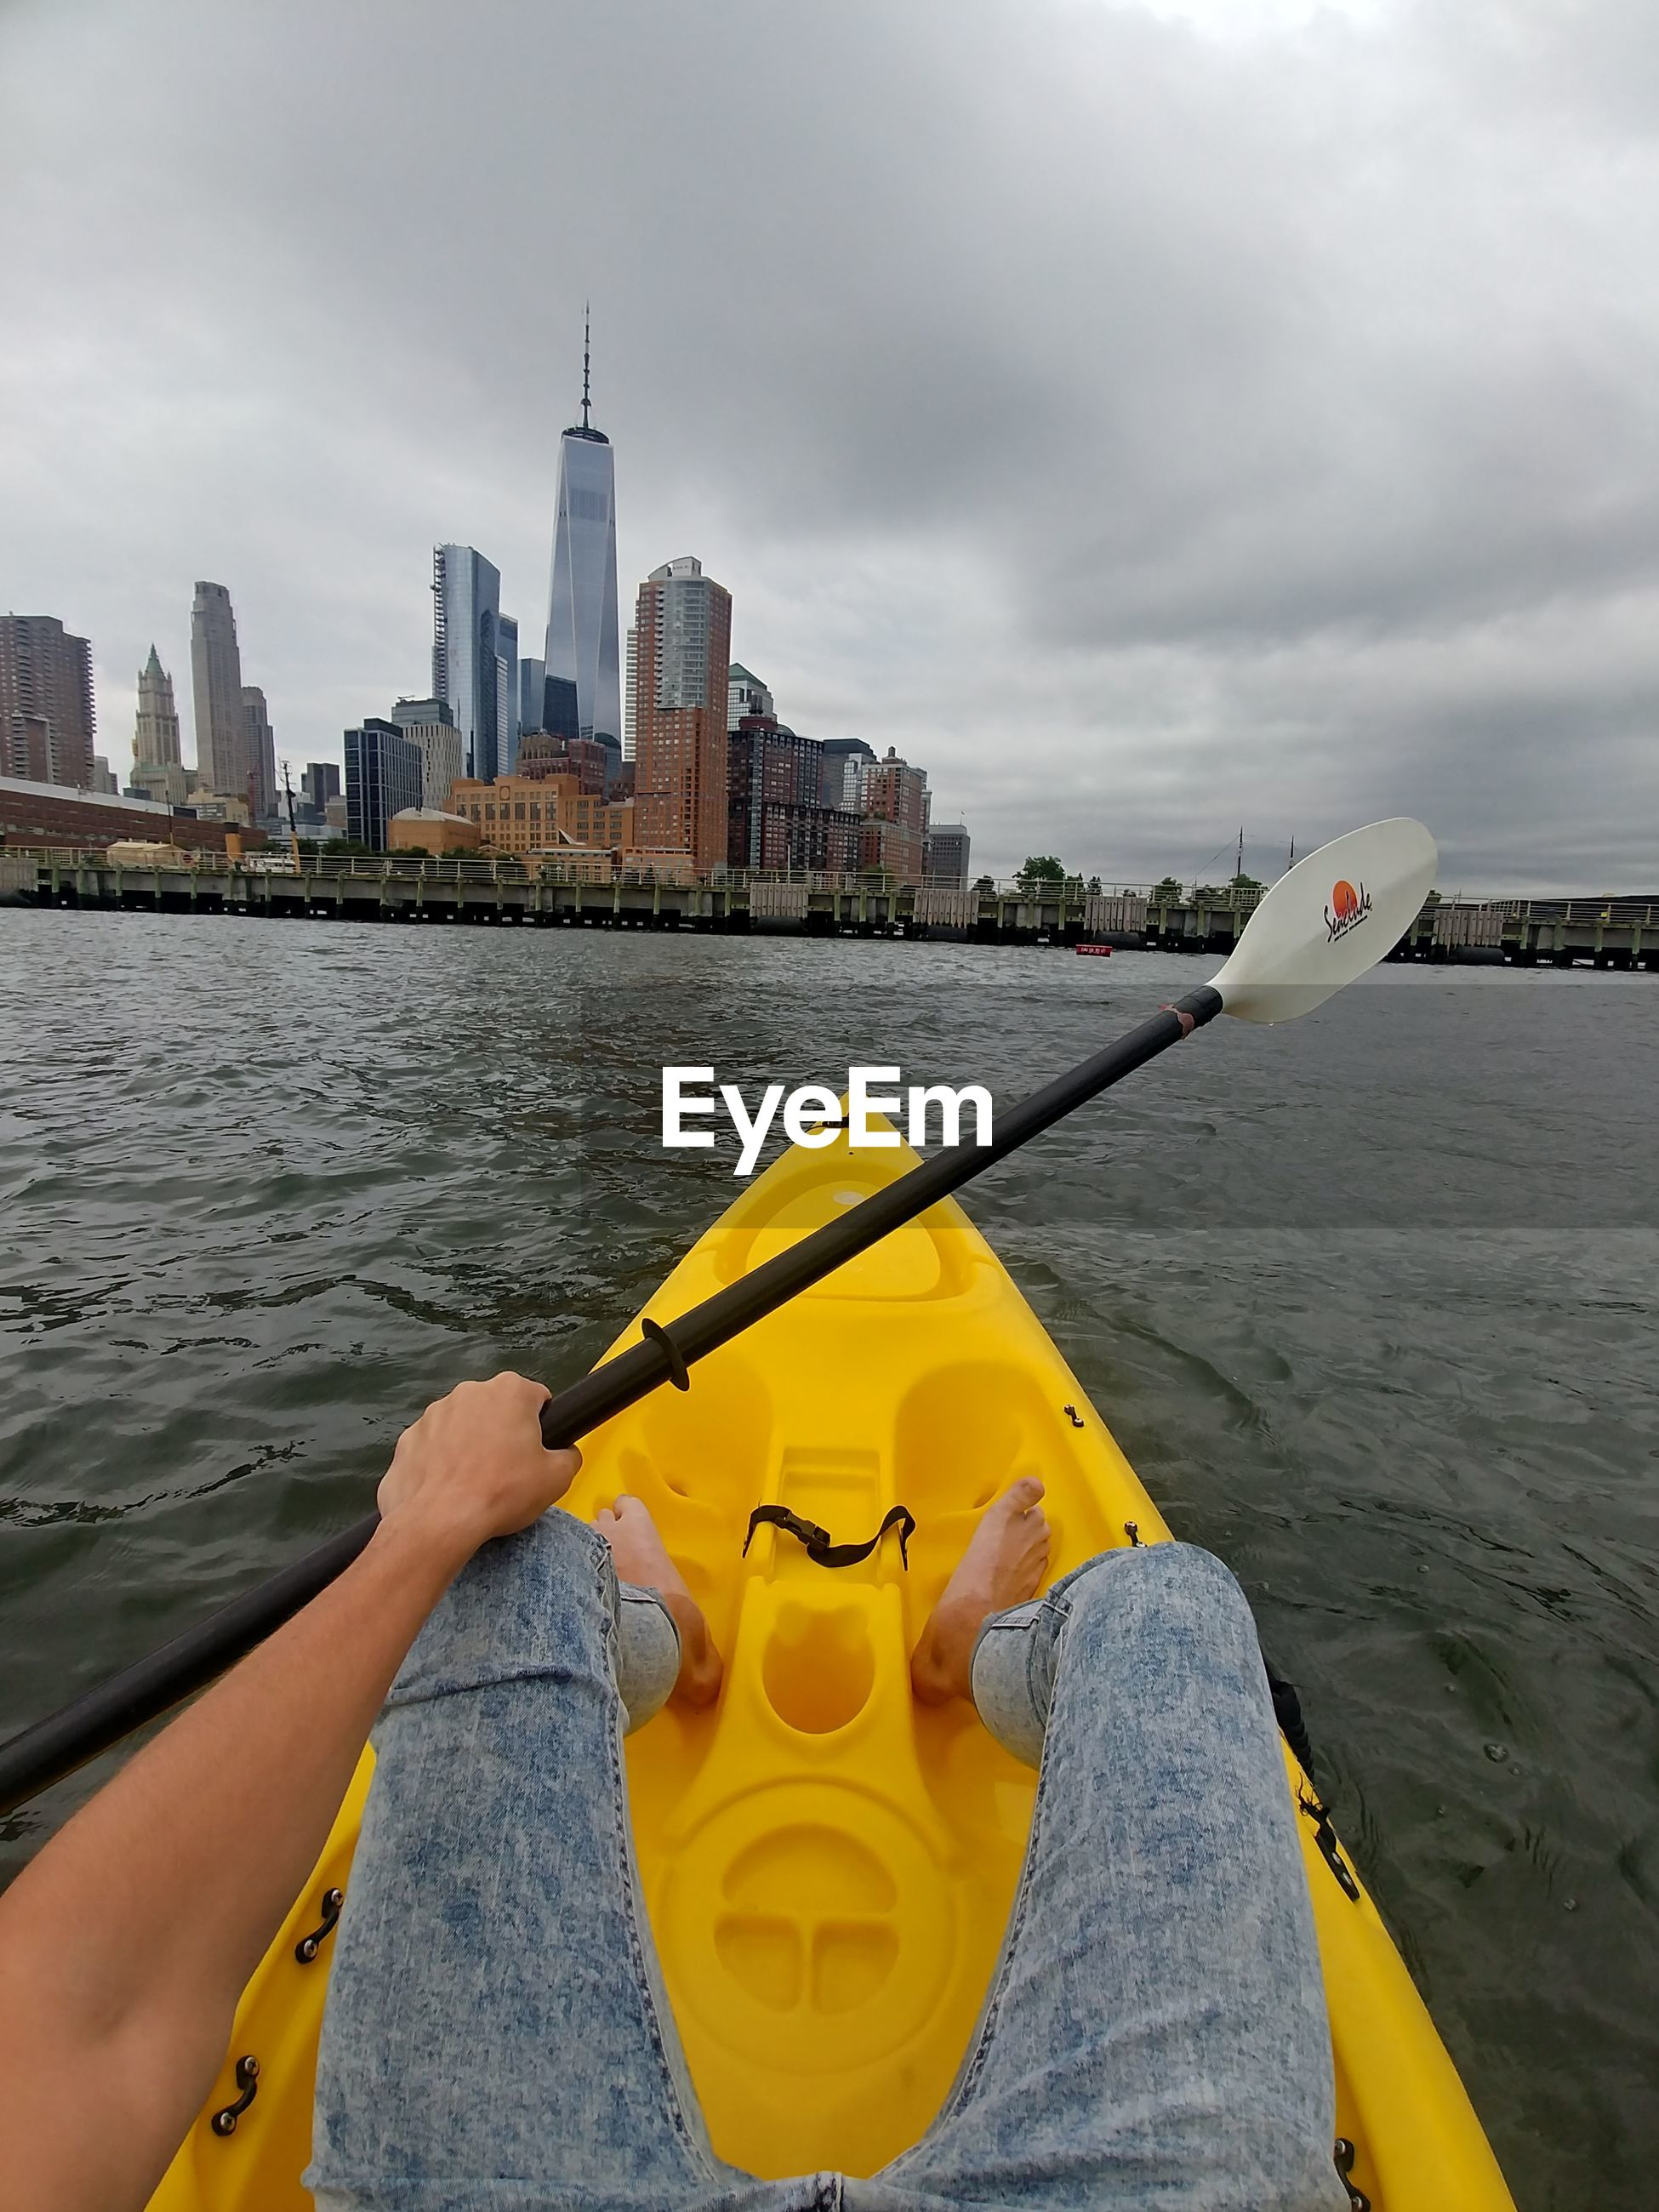 PERSON ON YELLOW BY RIVER AGAINST BUILDINGS IN CITY